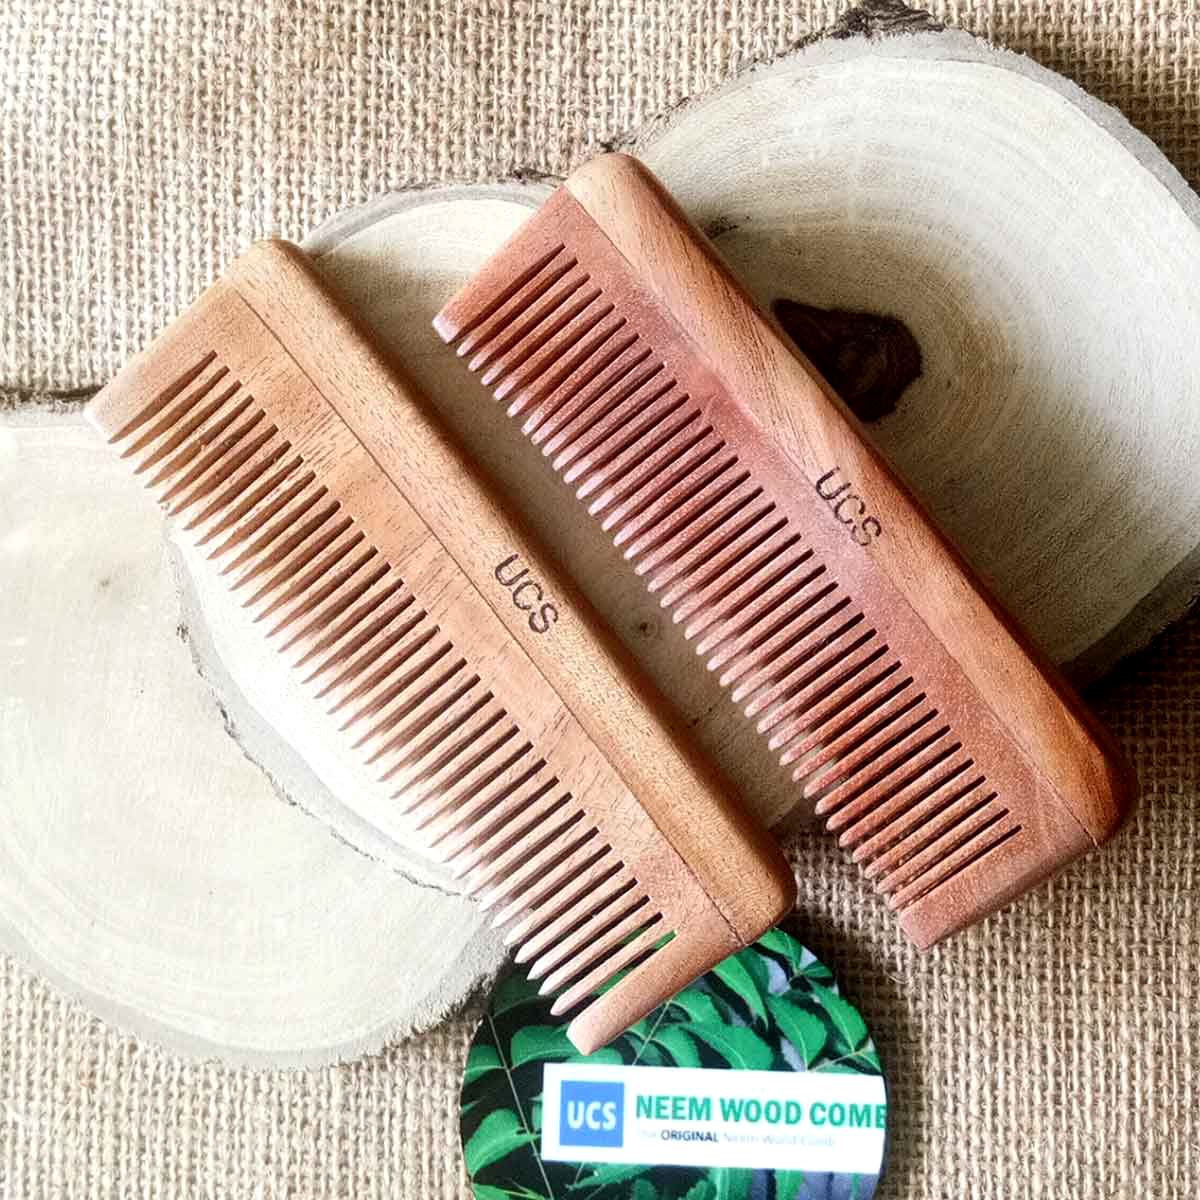 UCS Baby Comb Made of Neem Wood Set of 2 Baby Combs (UCS1018)